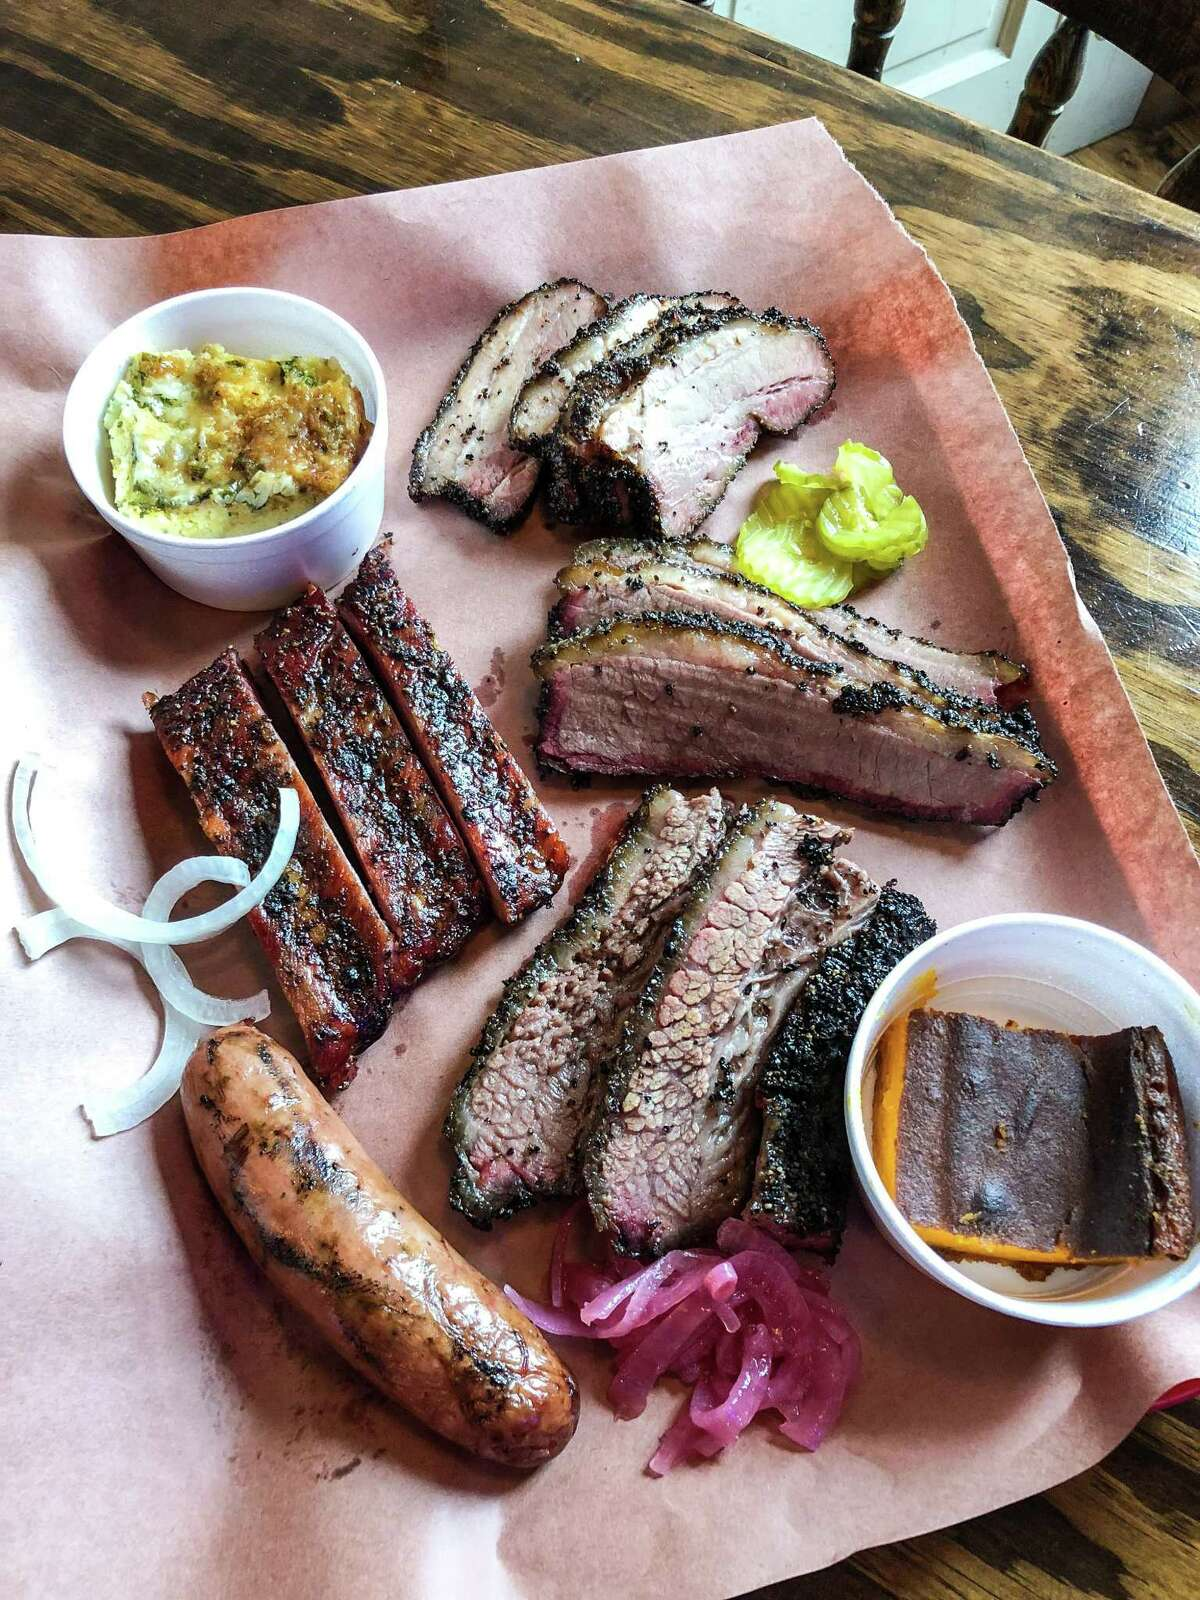 Tomball: Tejas Chocolate & Barbecue200 N Elm Street, TomballGregg H's review: